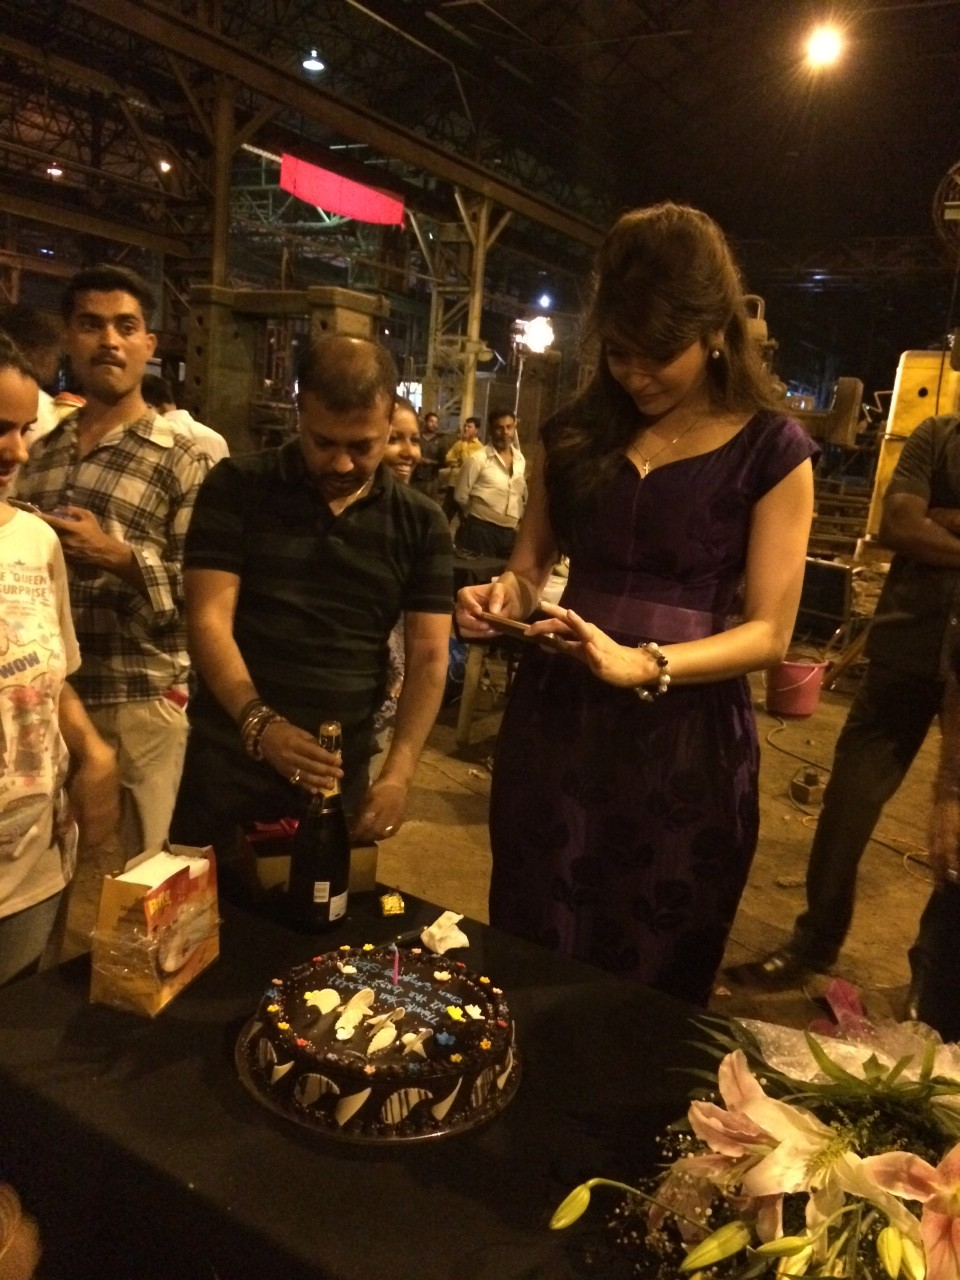 Anushka taking a picture of the cake before cutting it e1396968729685 Its a wrap and a cake for Anushka Sharma for Bombay Velvet